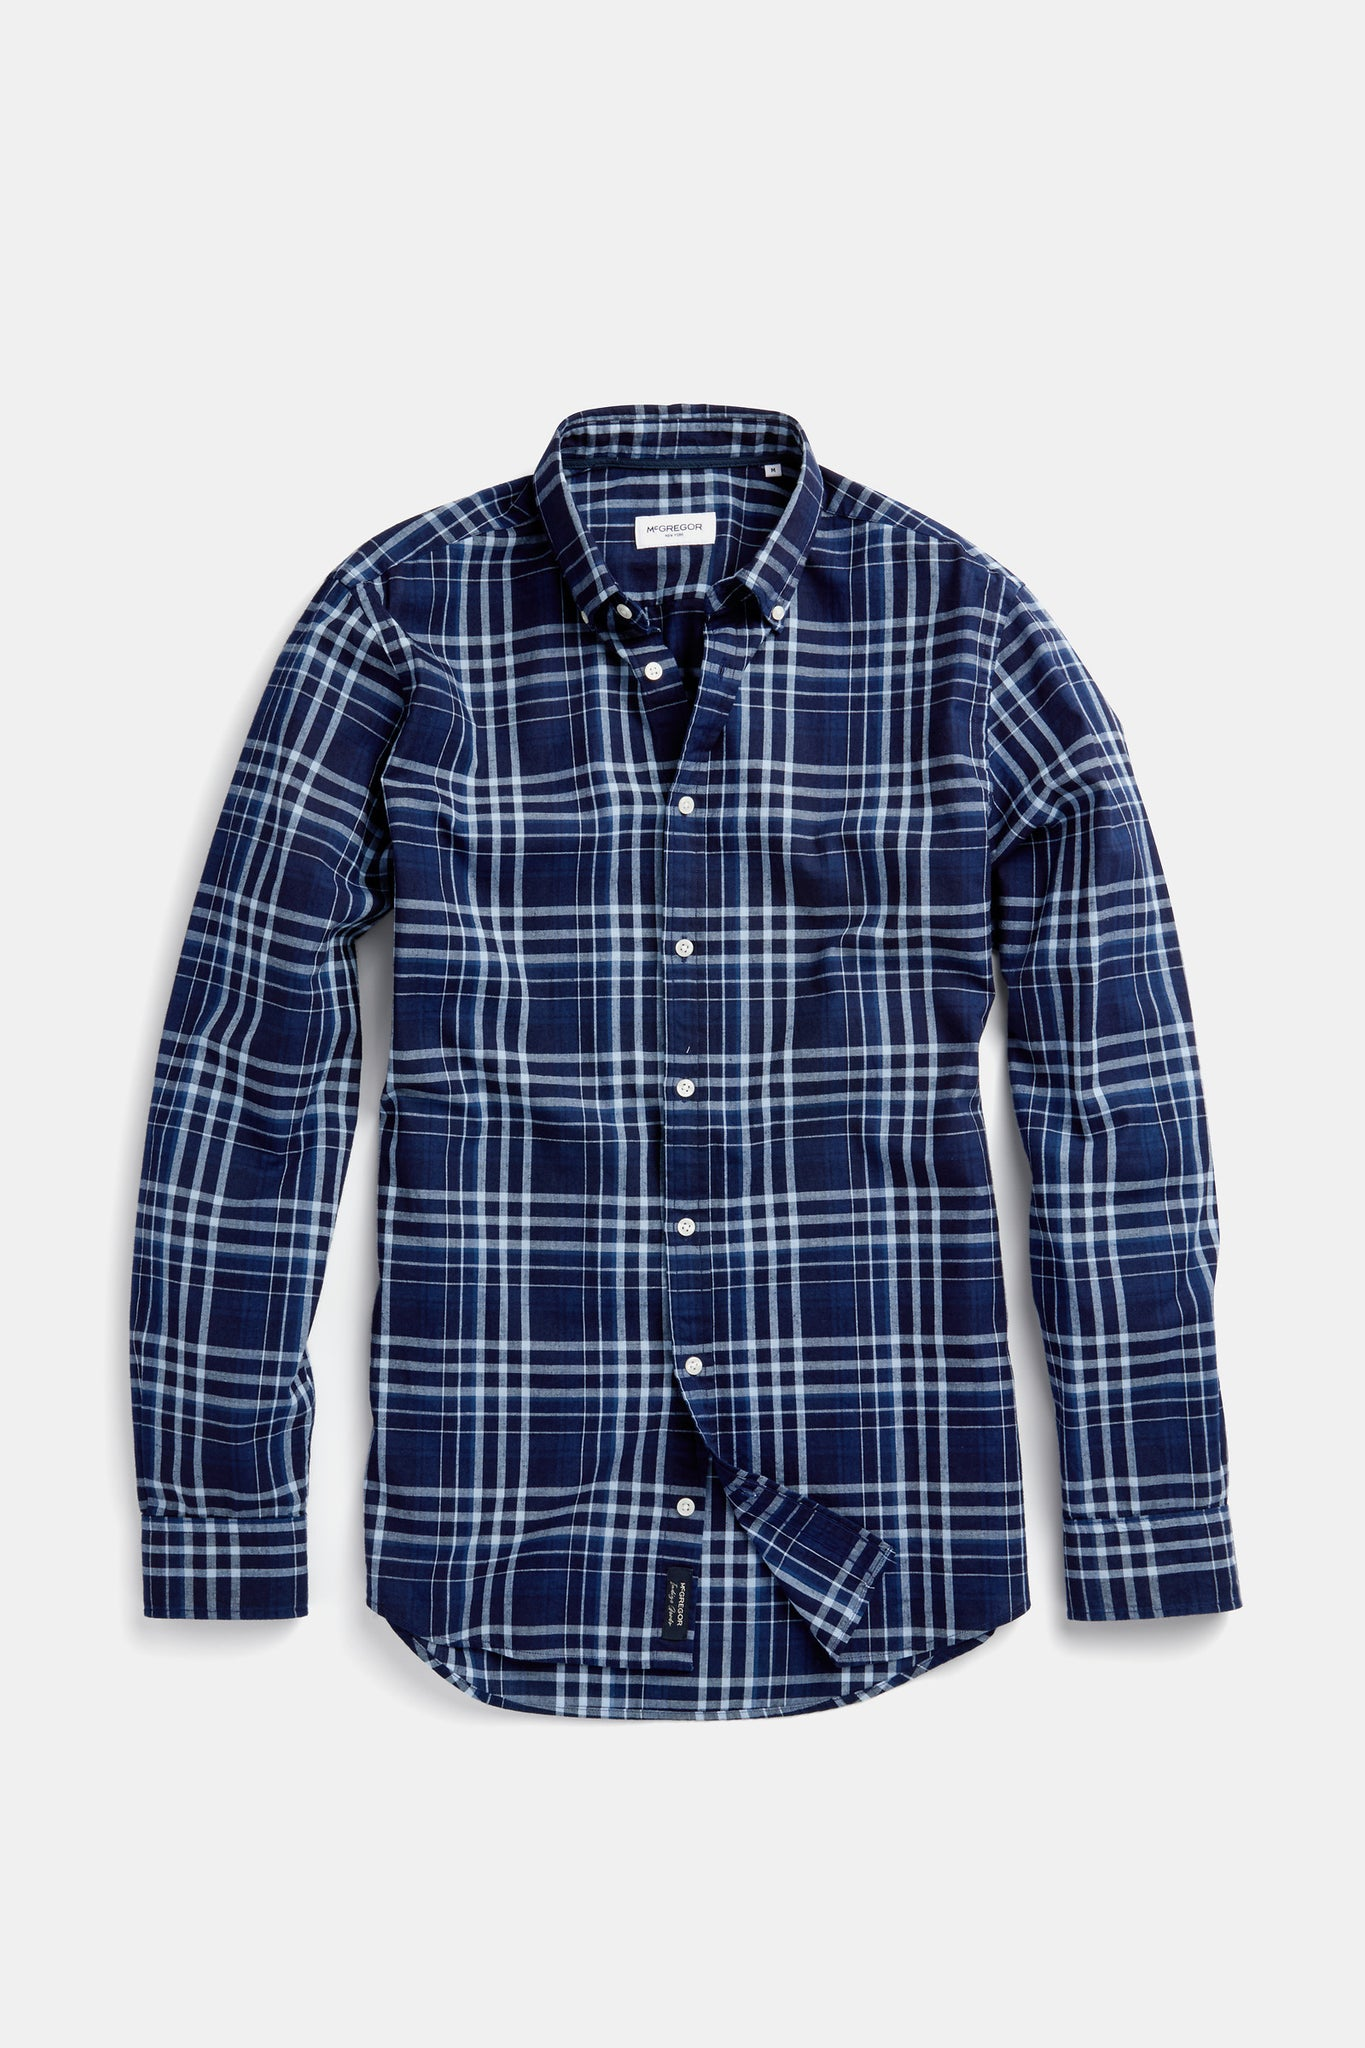 Cotton Shirt in Indigo Check Regular Fit